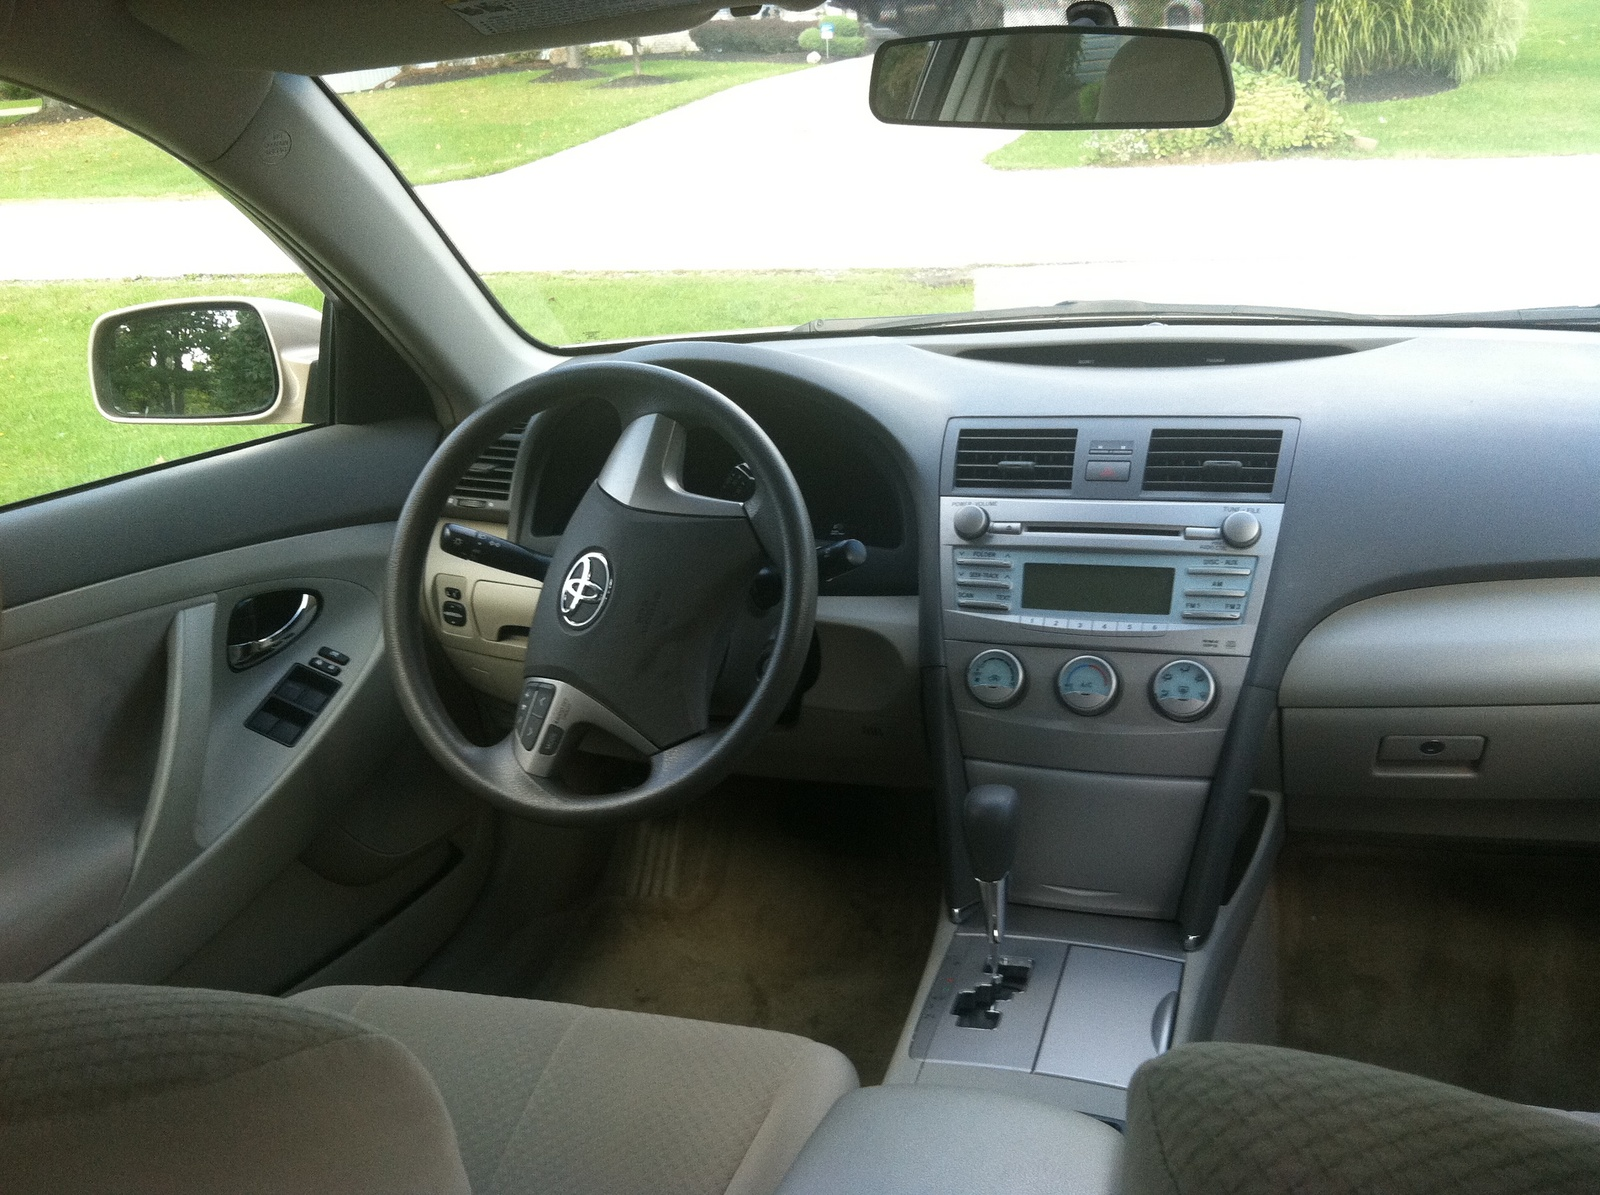 2008 toyota camry interior 28 images 2008 toyota camry interior view photo 6 car and driver. Black Bedroom Furniture Sets. Home Design Ideas